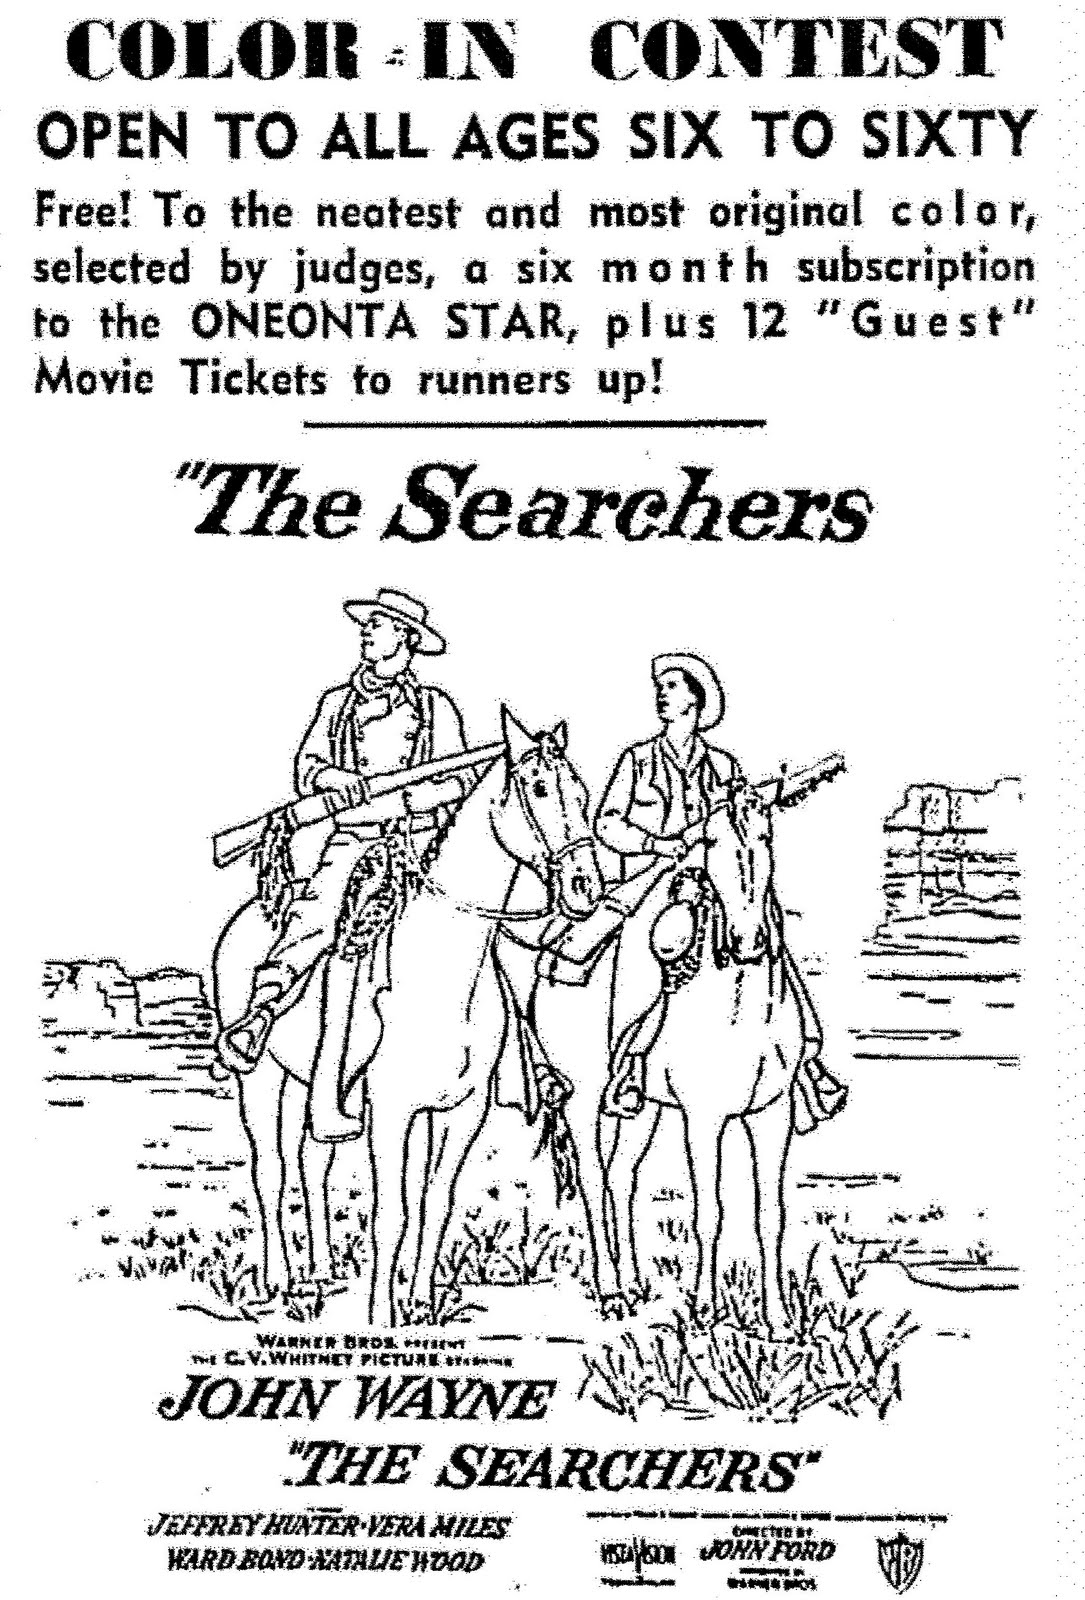 Mostly Paper Dolls: THE SEARCHERS Movie Coloring Contest, 1956